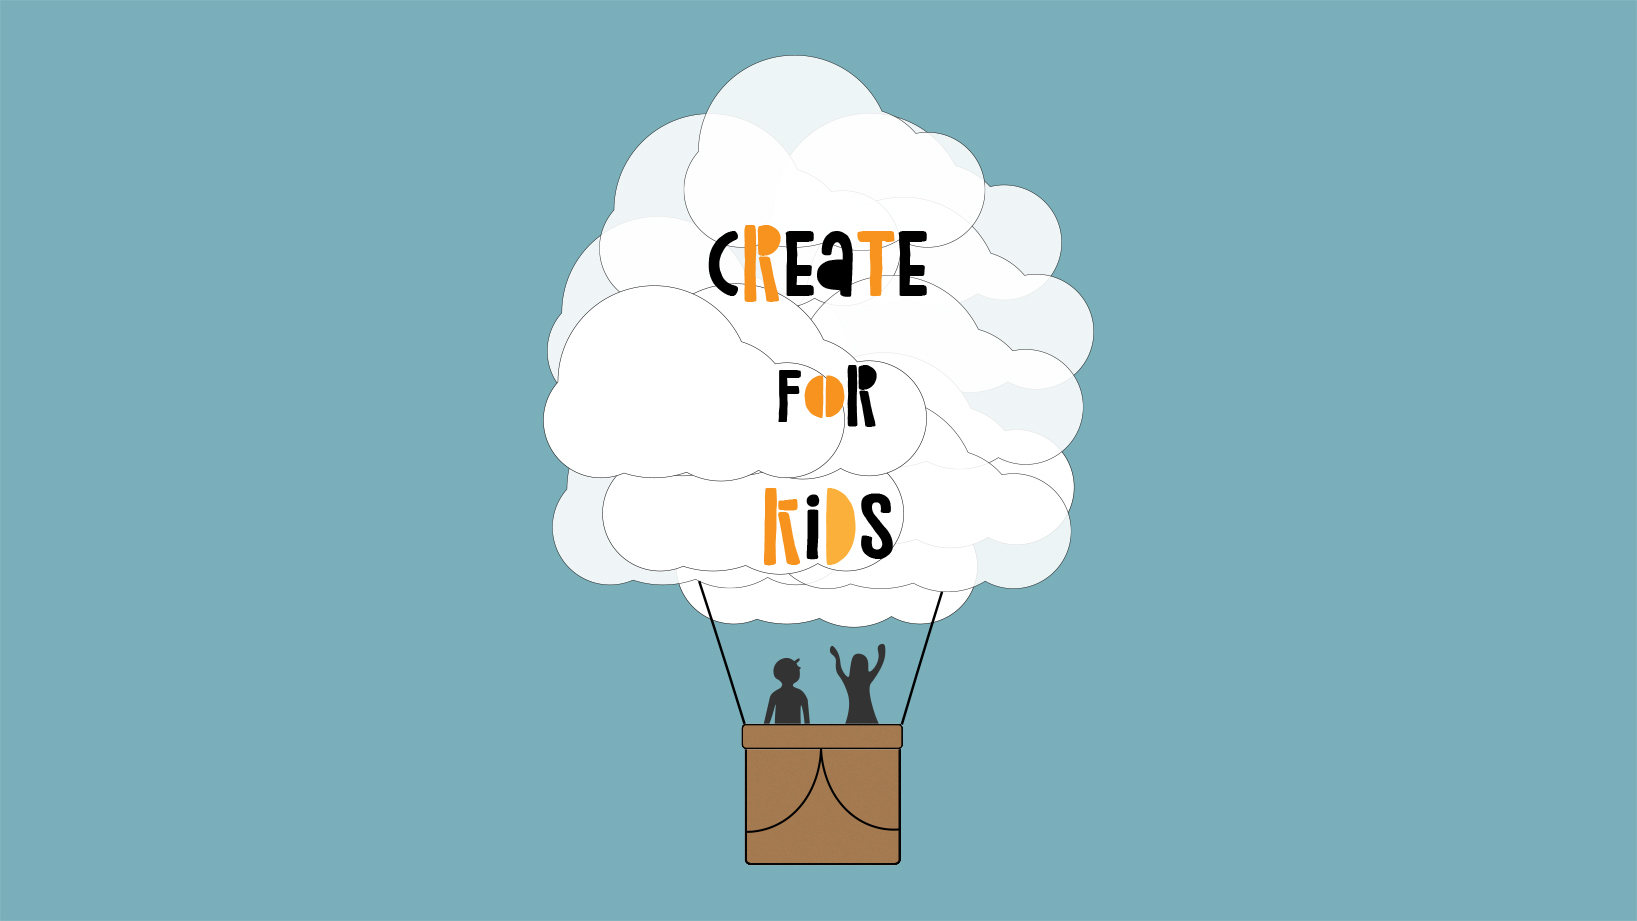 Create for Kids - Maximize Your Child's Creative Potential